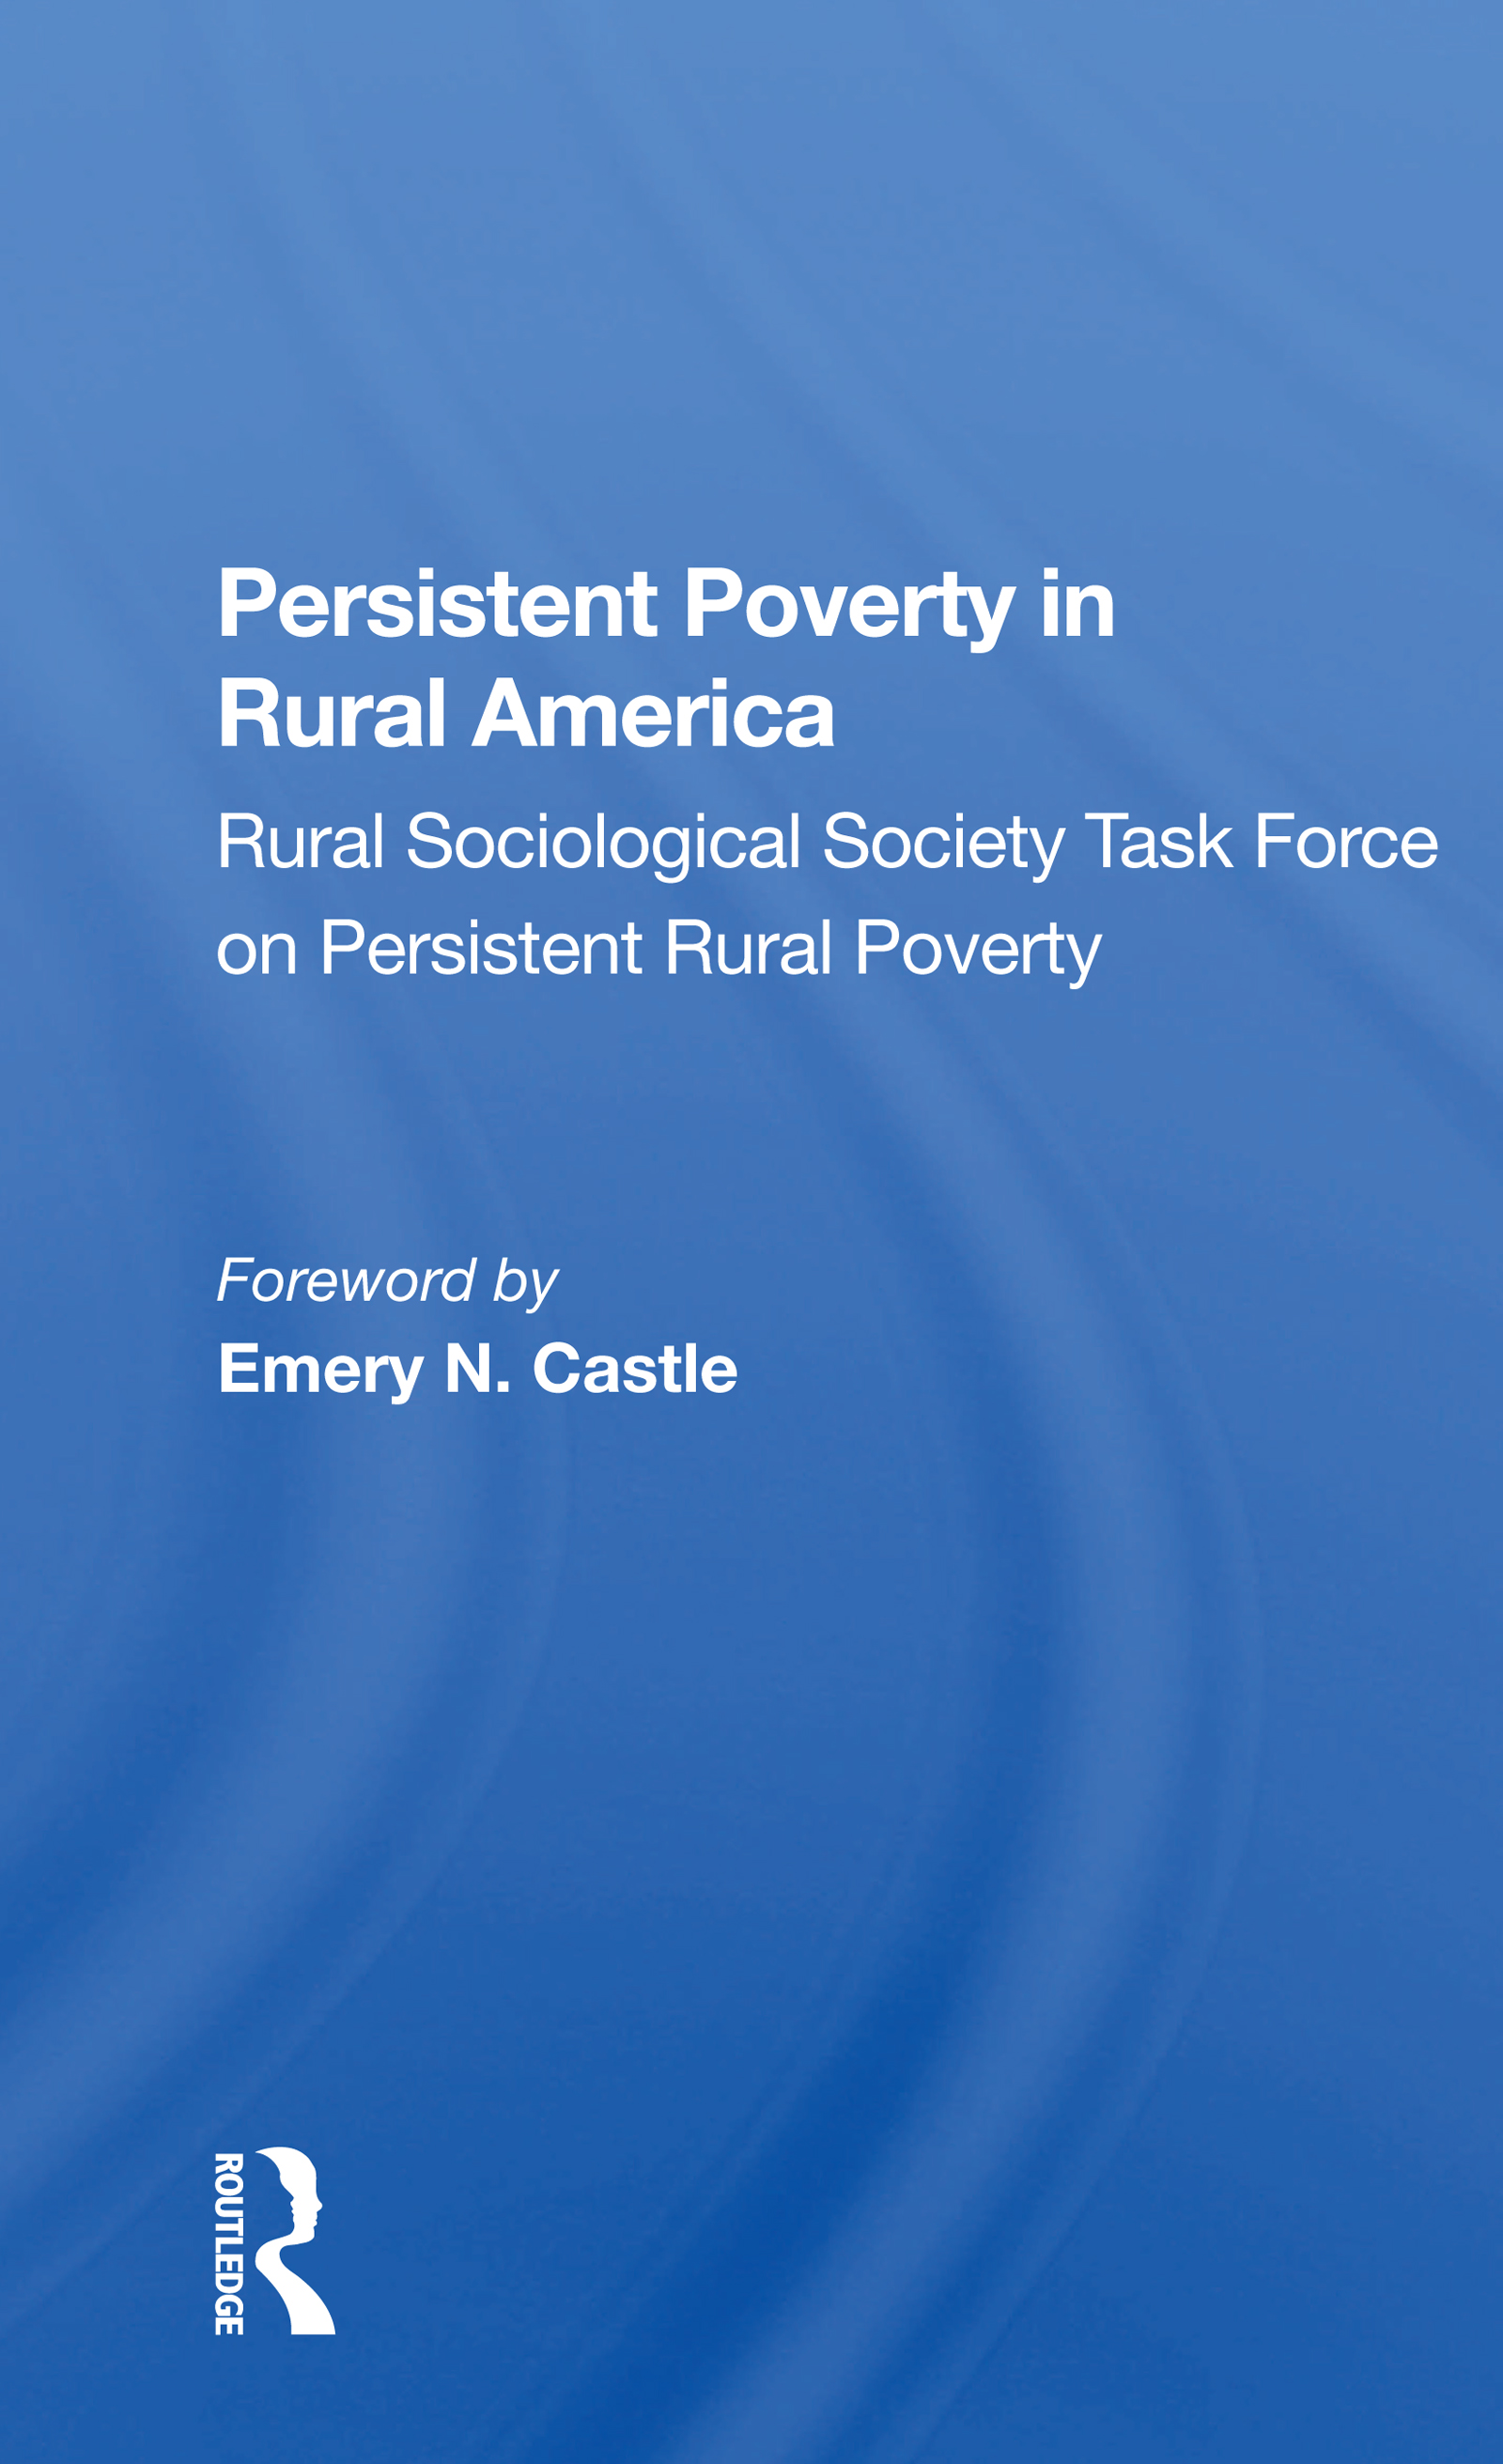 Persistent Poverty in Rural America